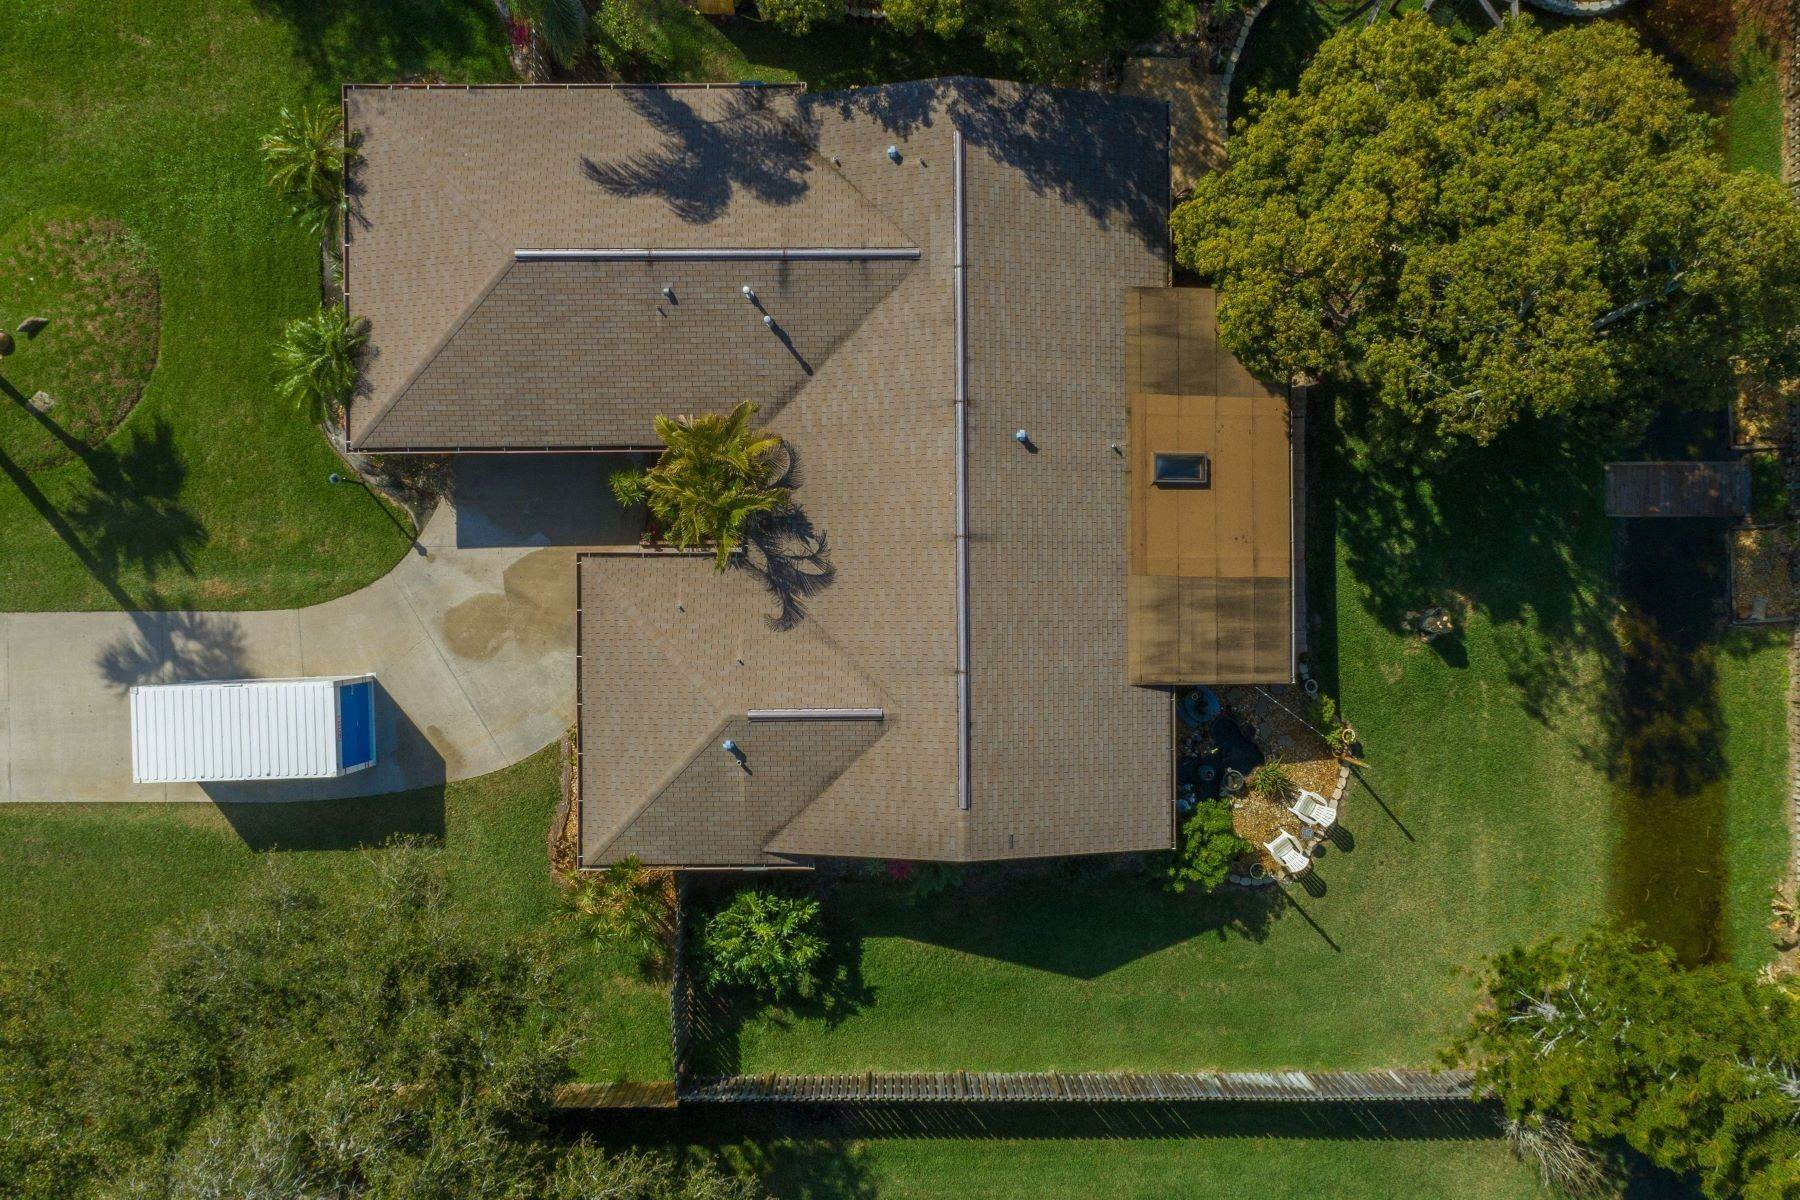 Single Family Homes for Sale at 1816 Oakwood Trail, Melbourne, FL 1816 Oakwood Trail Melbourne, Florida 32934 United States